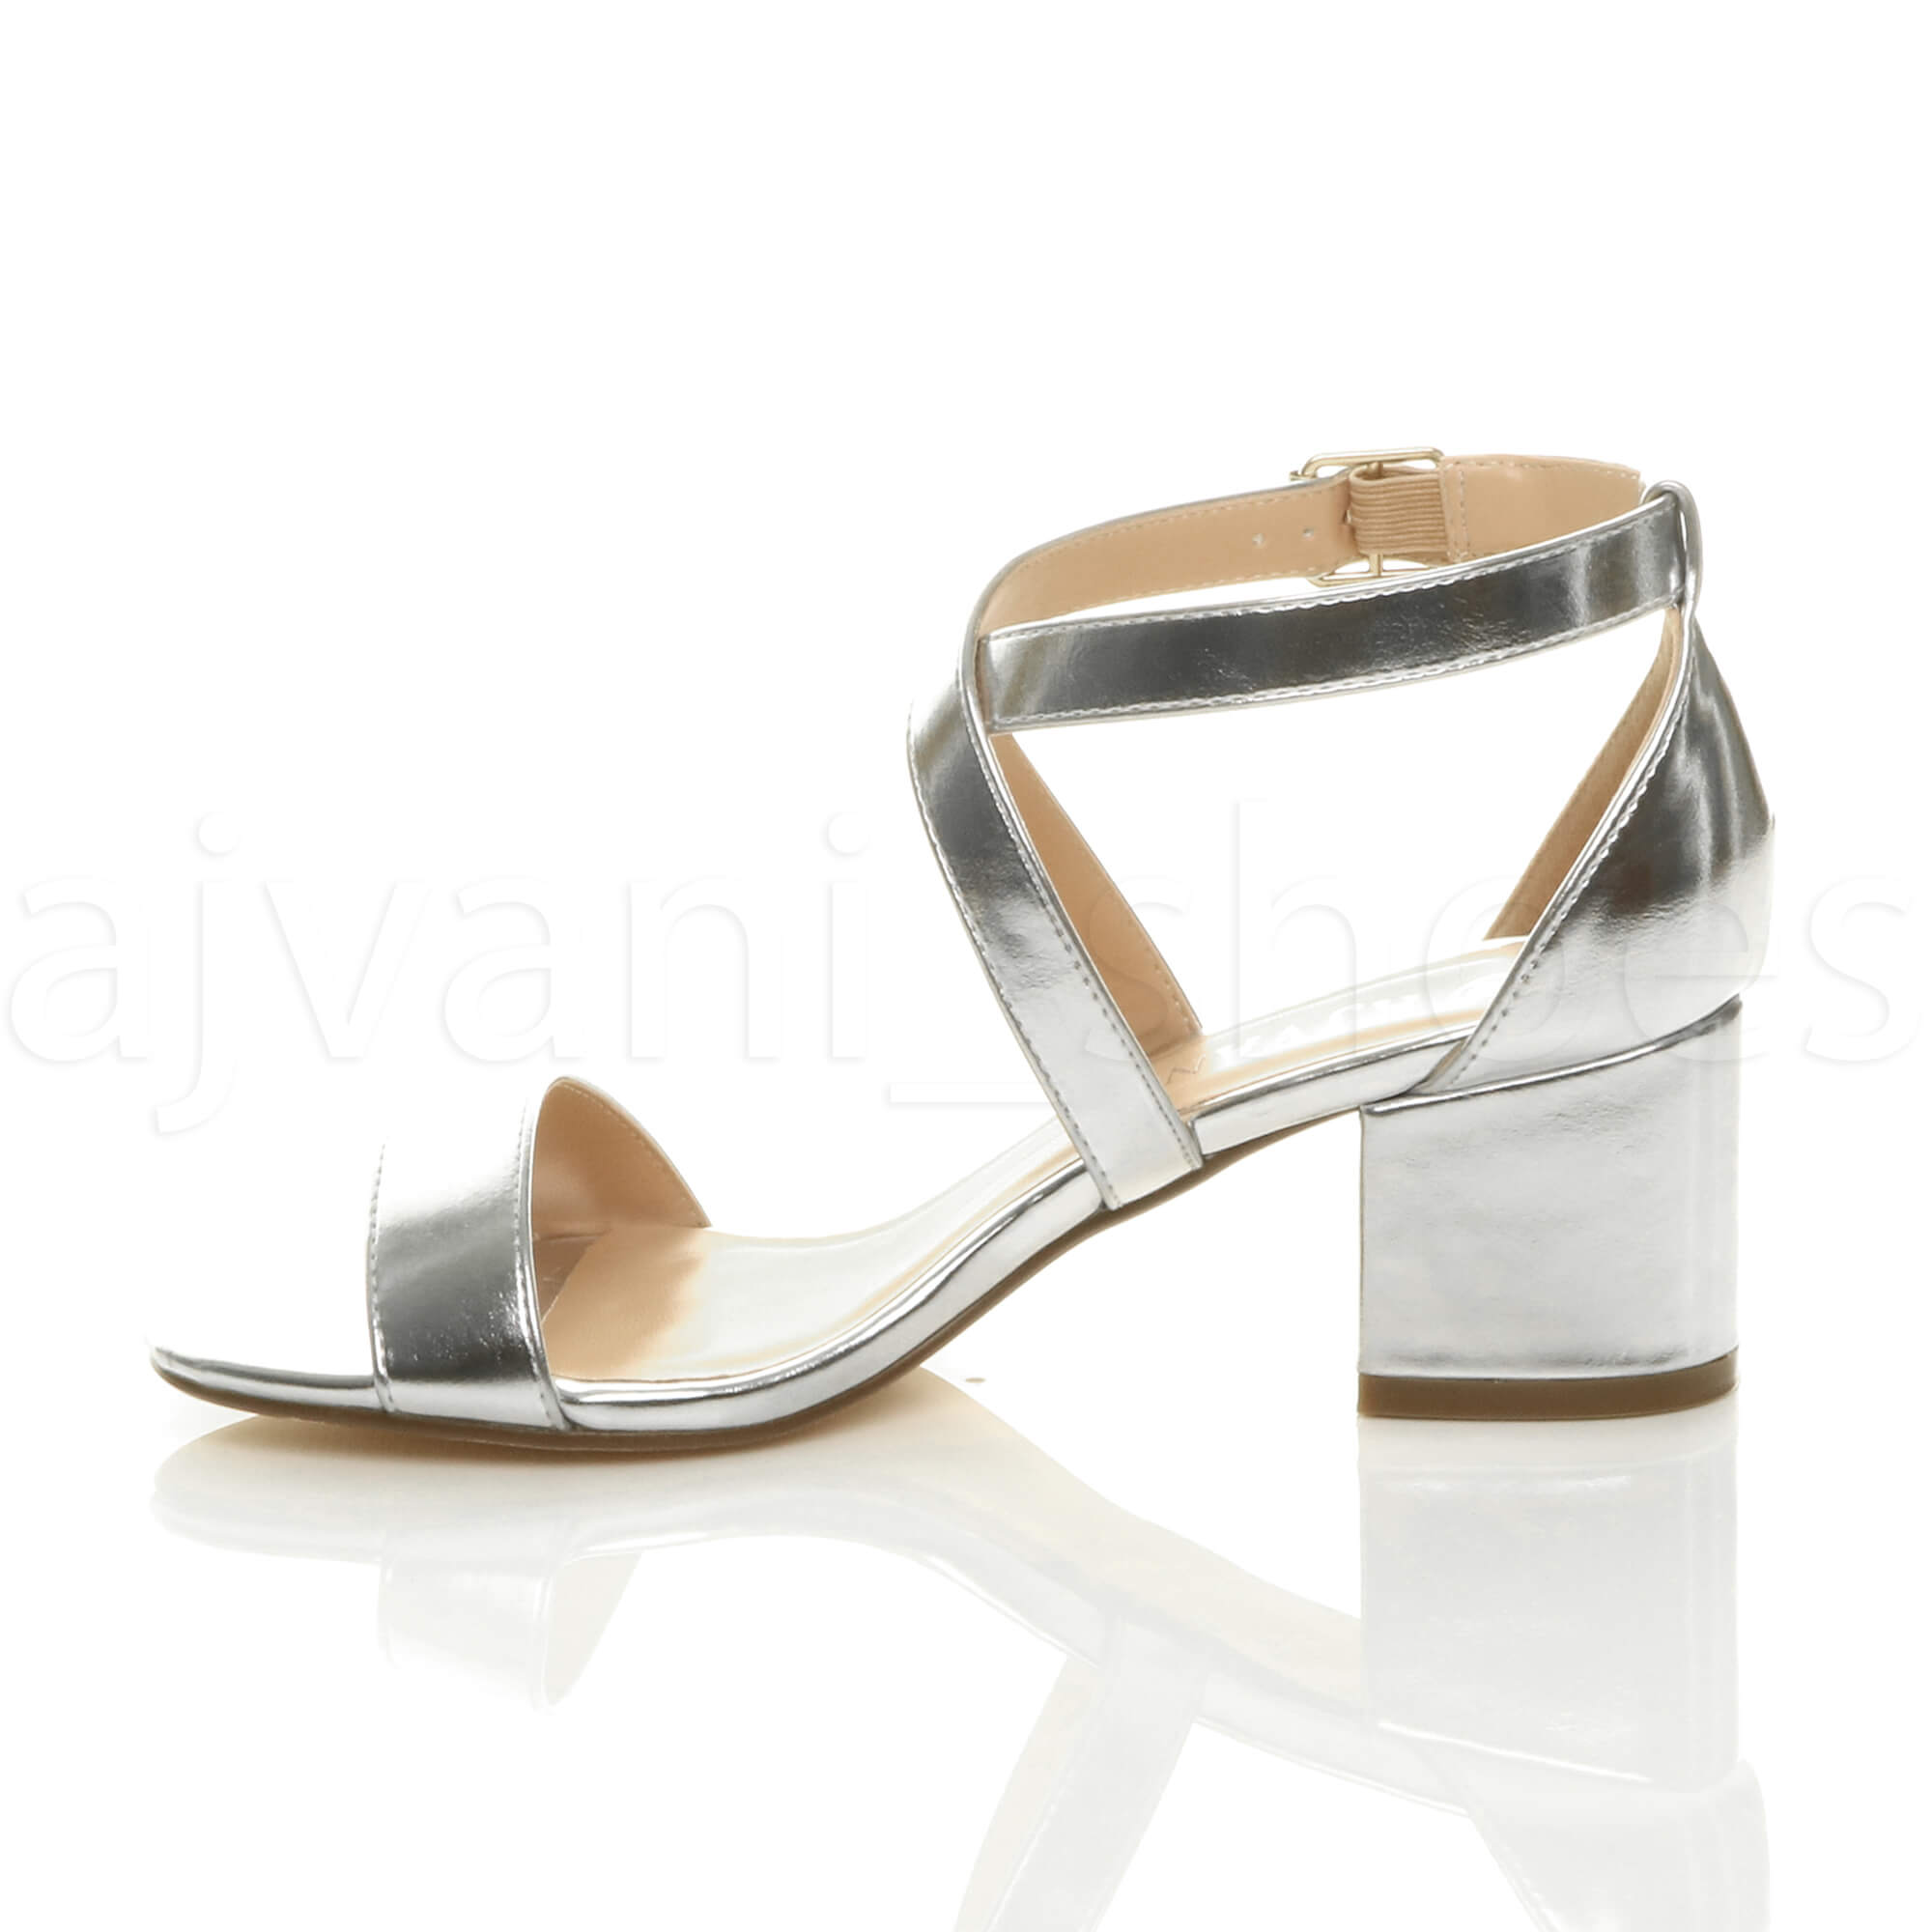 WOMENS-LADIES-MID-LOW-BLOCK-HEEL-CROSS-STRAPS-PARTY-STRAPPY-SANDALS-SHOES-SIZE thumbnail 80